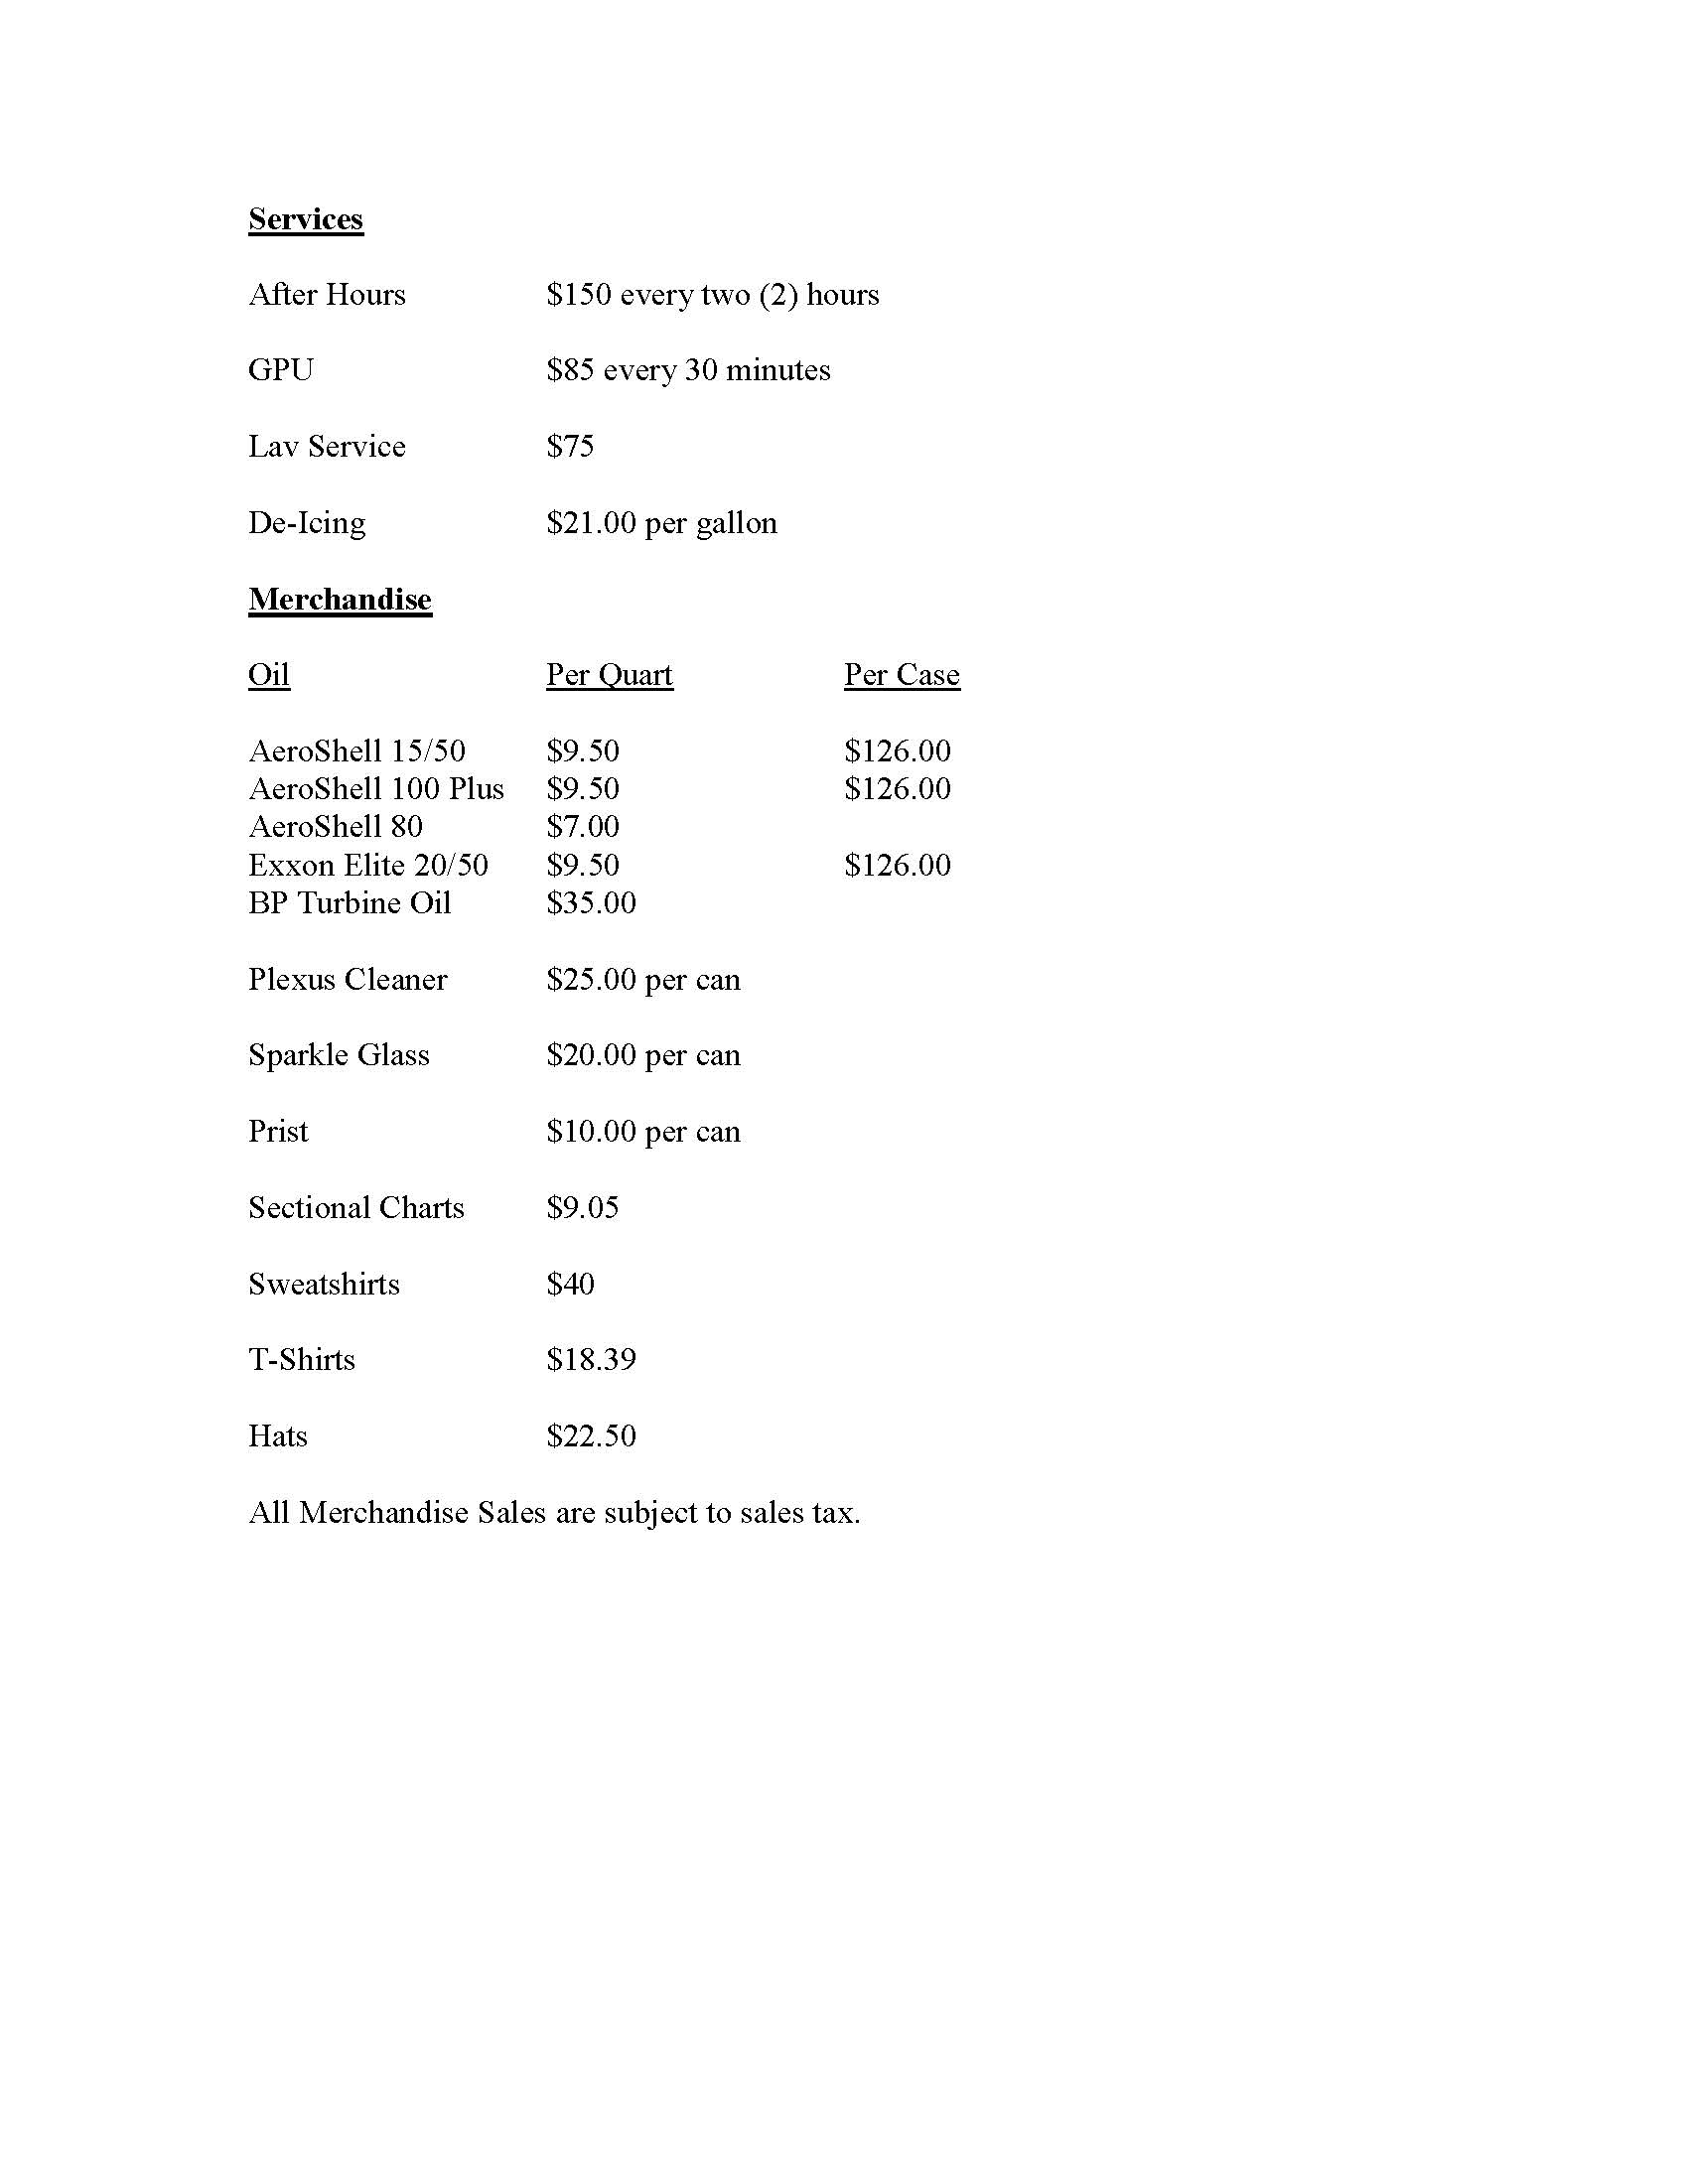 ServiceFees_Page_2